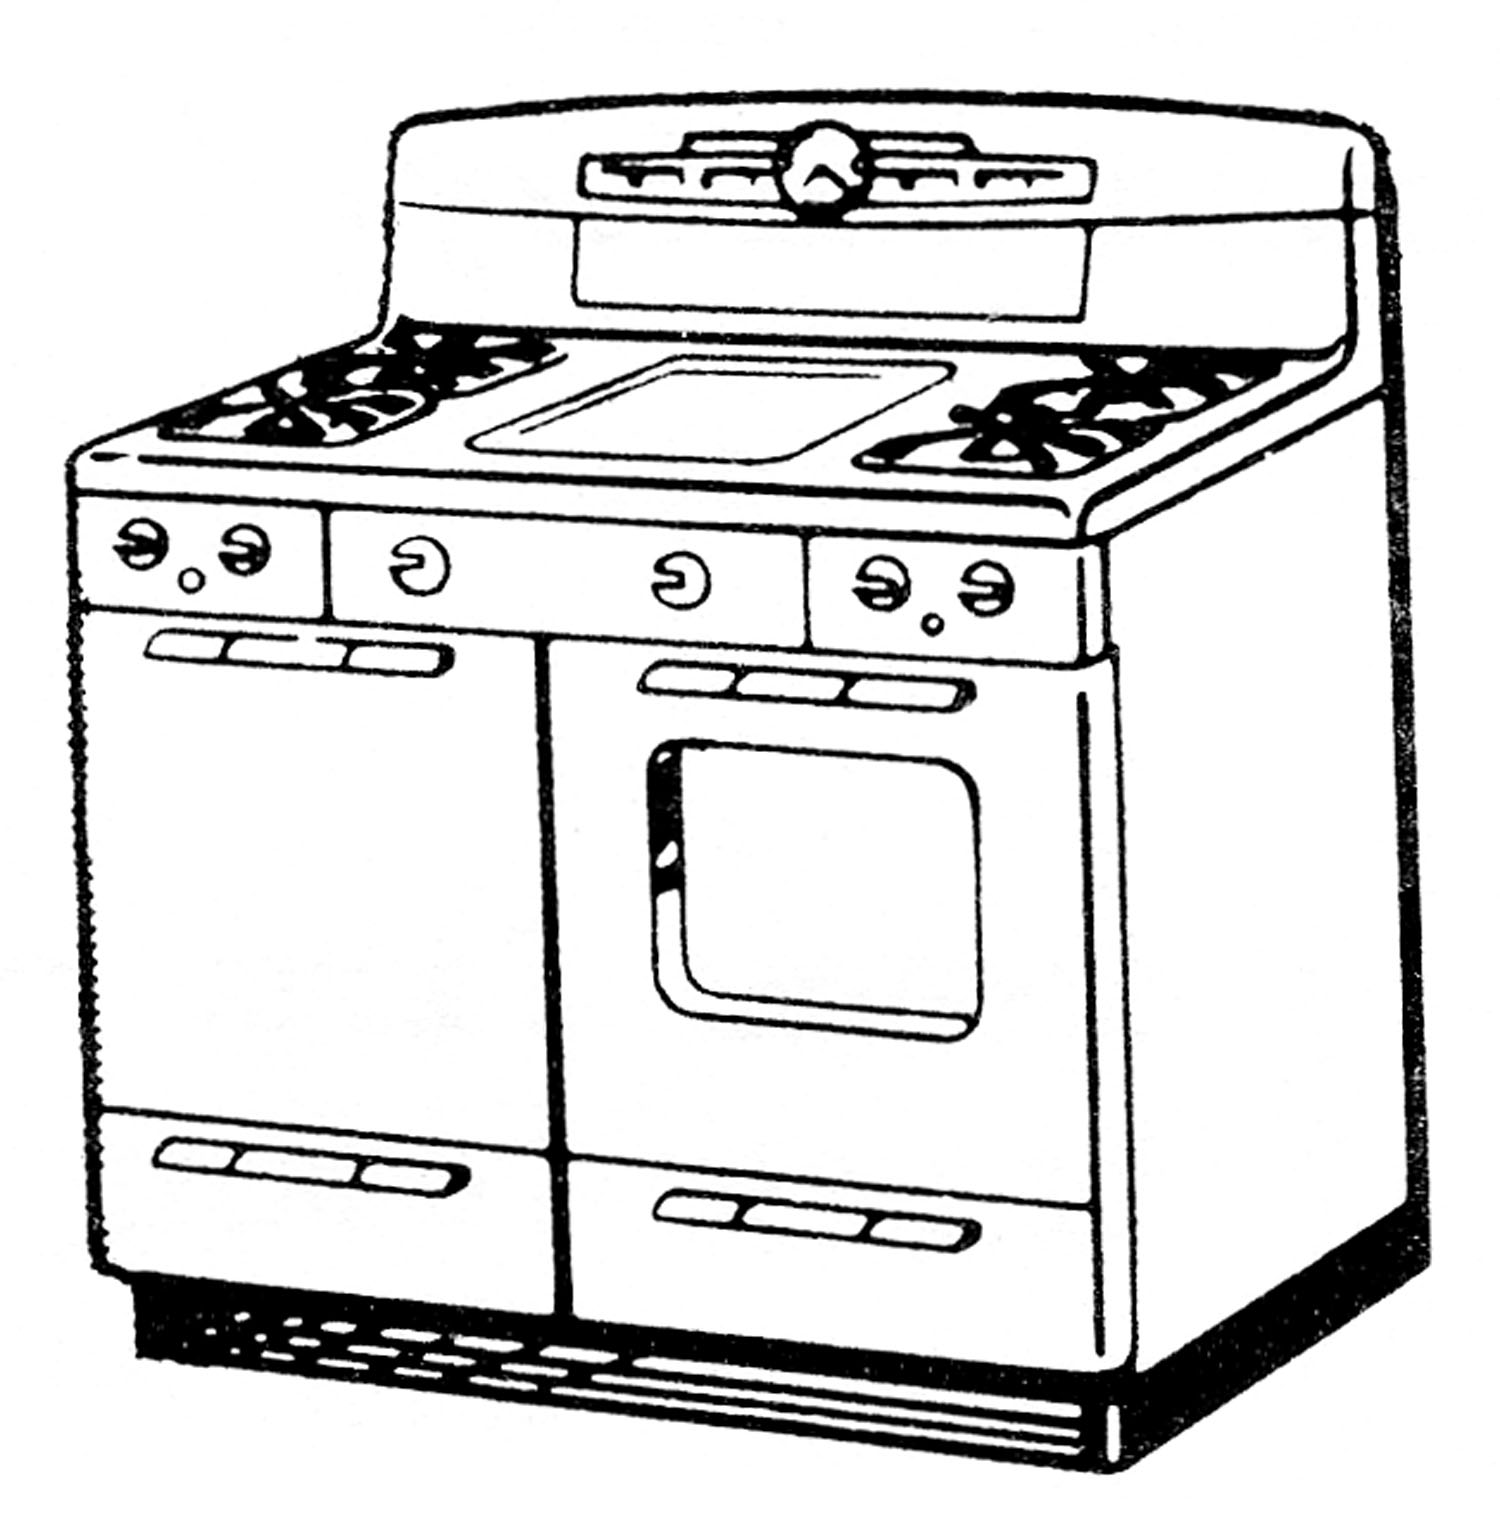 Black and white oven clipart clipart transparent library Oven clipart black and white 6 » Clipart Station clipart transparent library